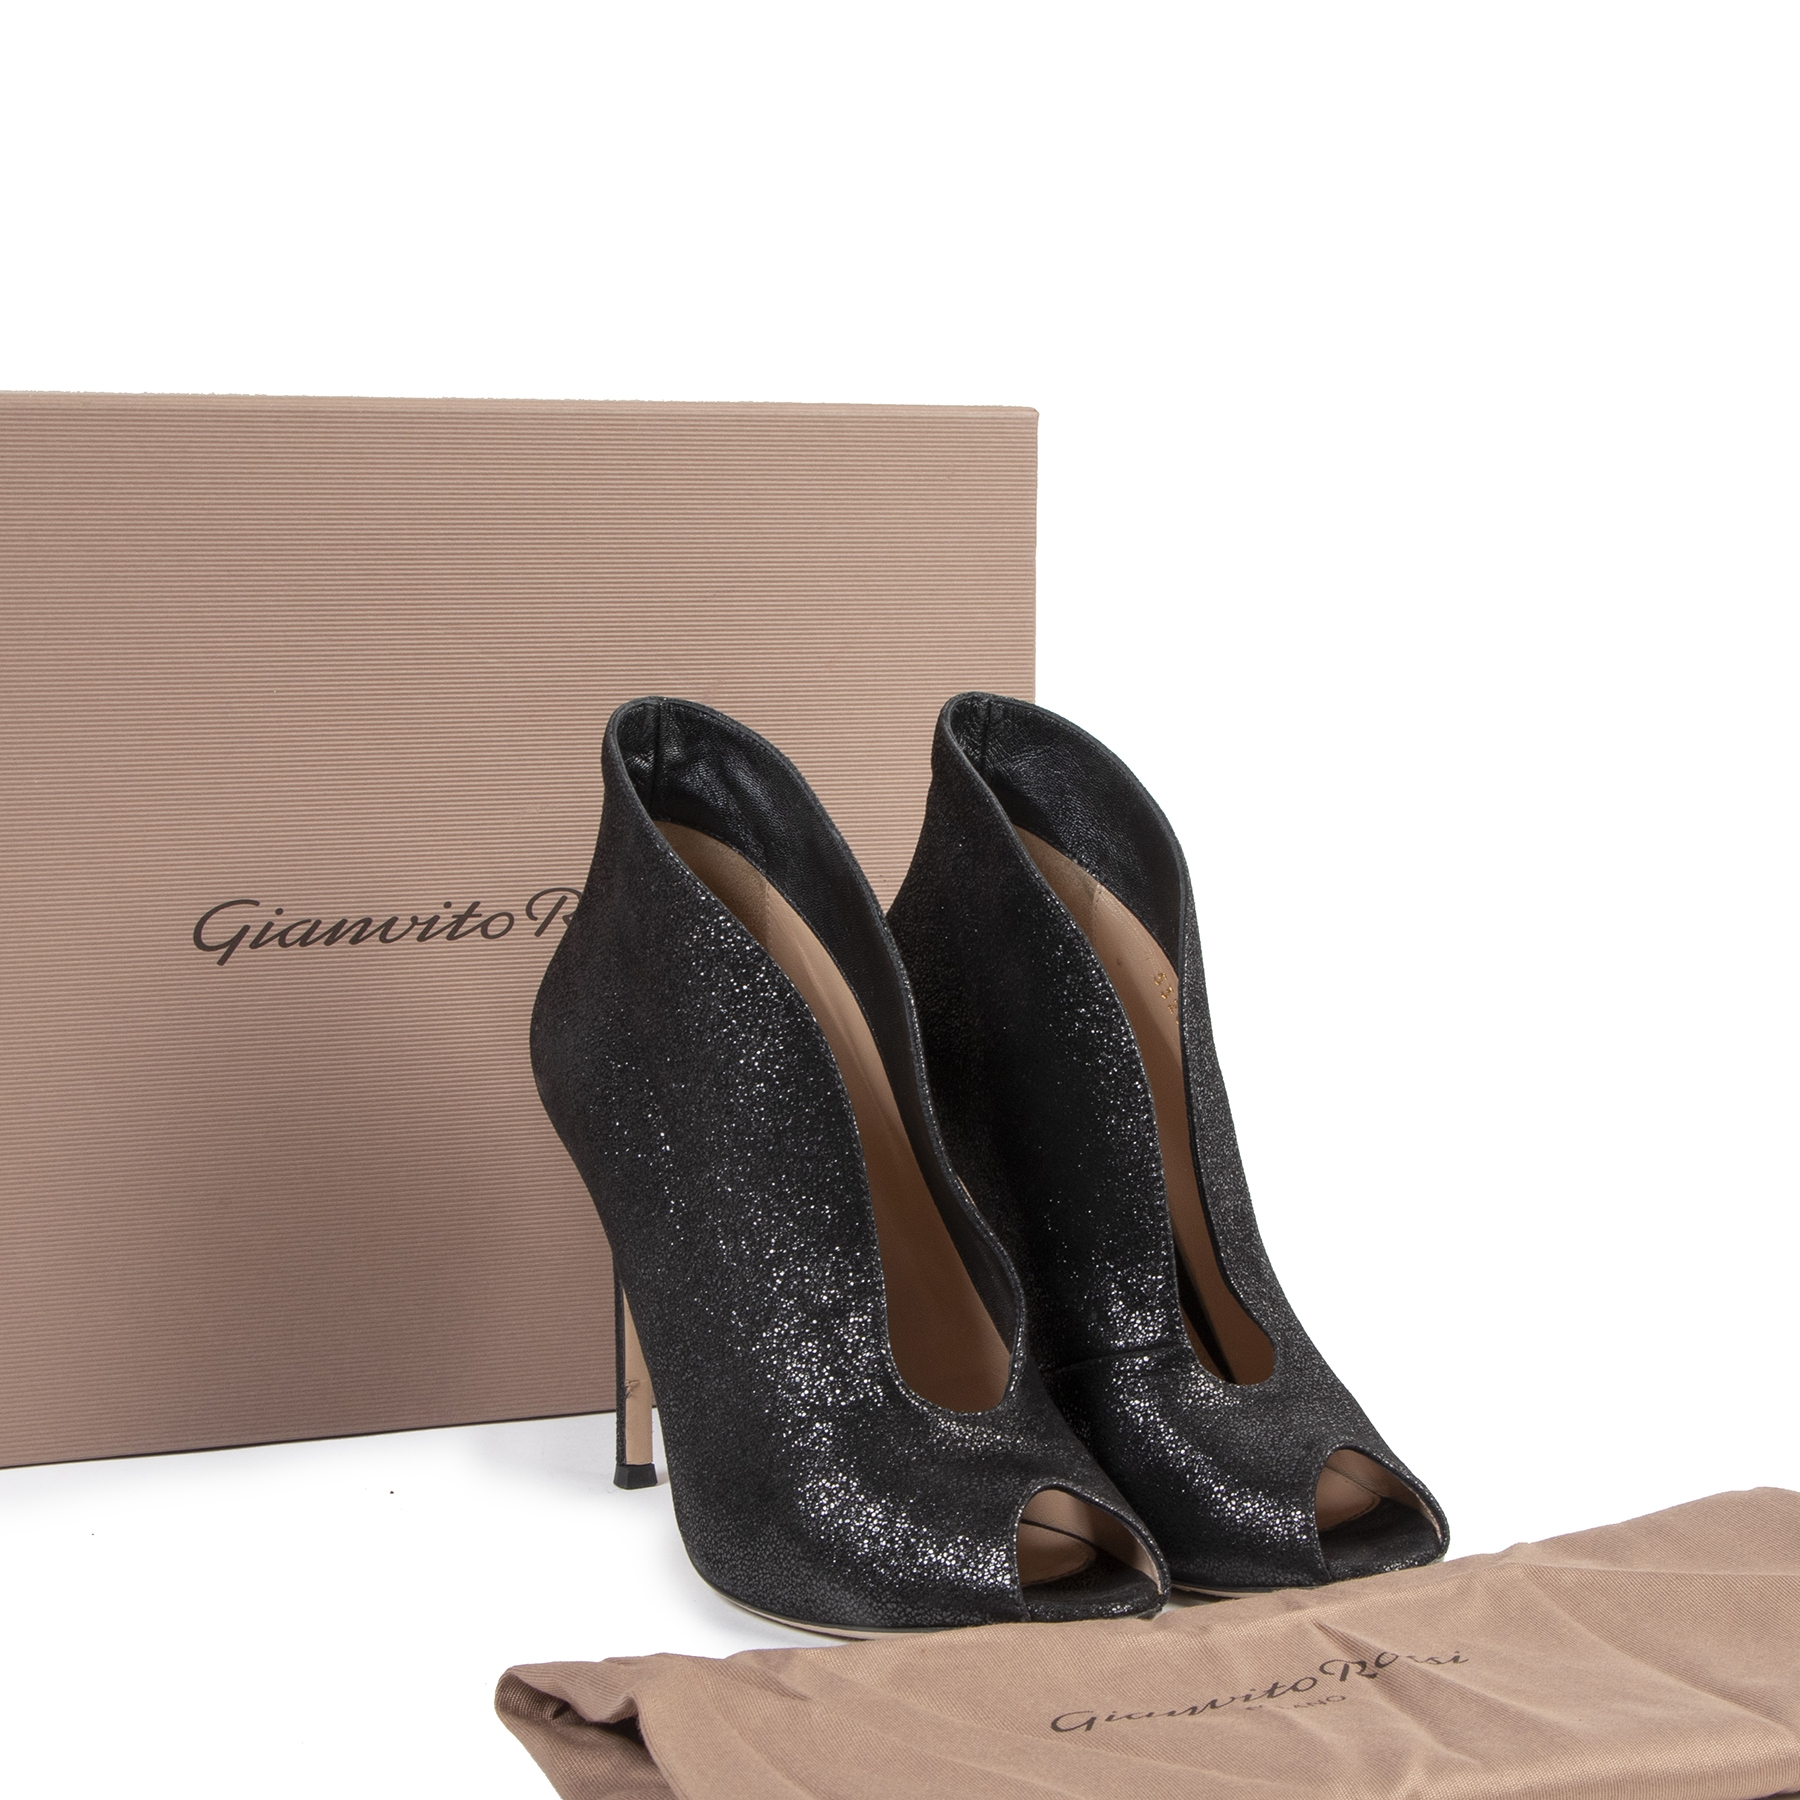 Authentic second-hand vintage Gianvito Rossi Black Vamp Heels - Size 37,5 buy online webshop LabelLOV